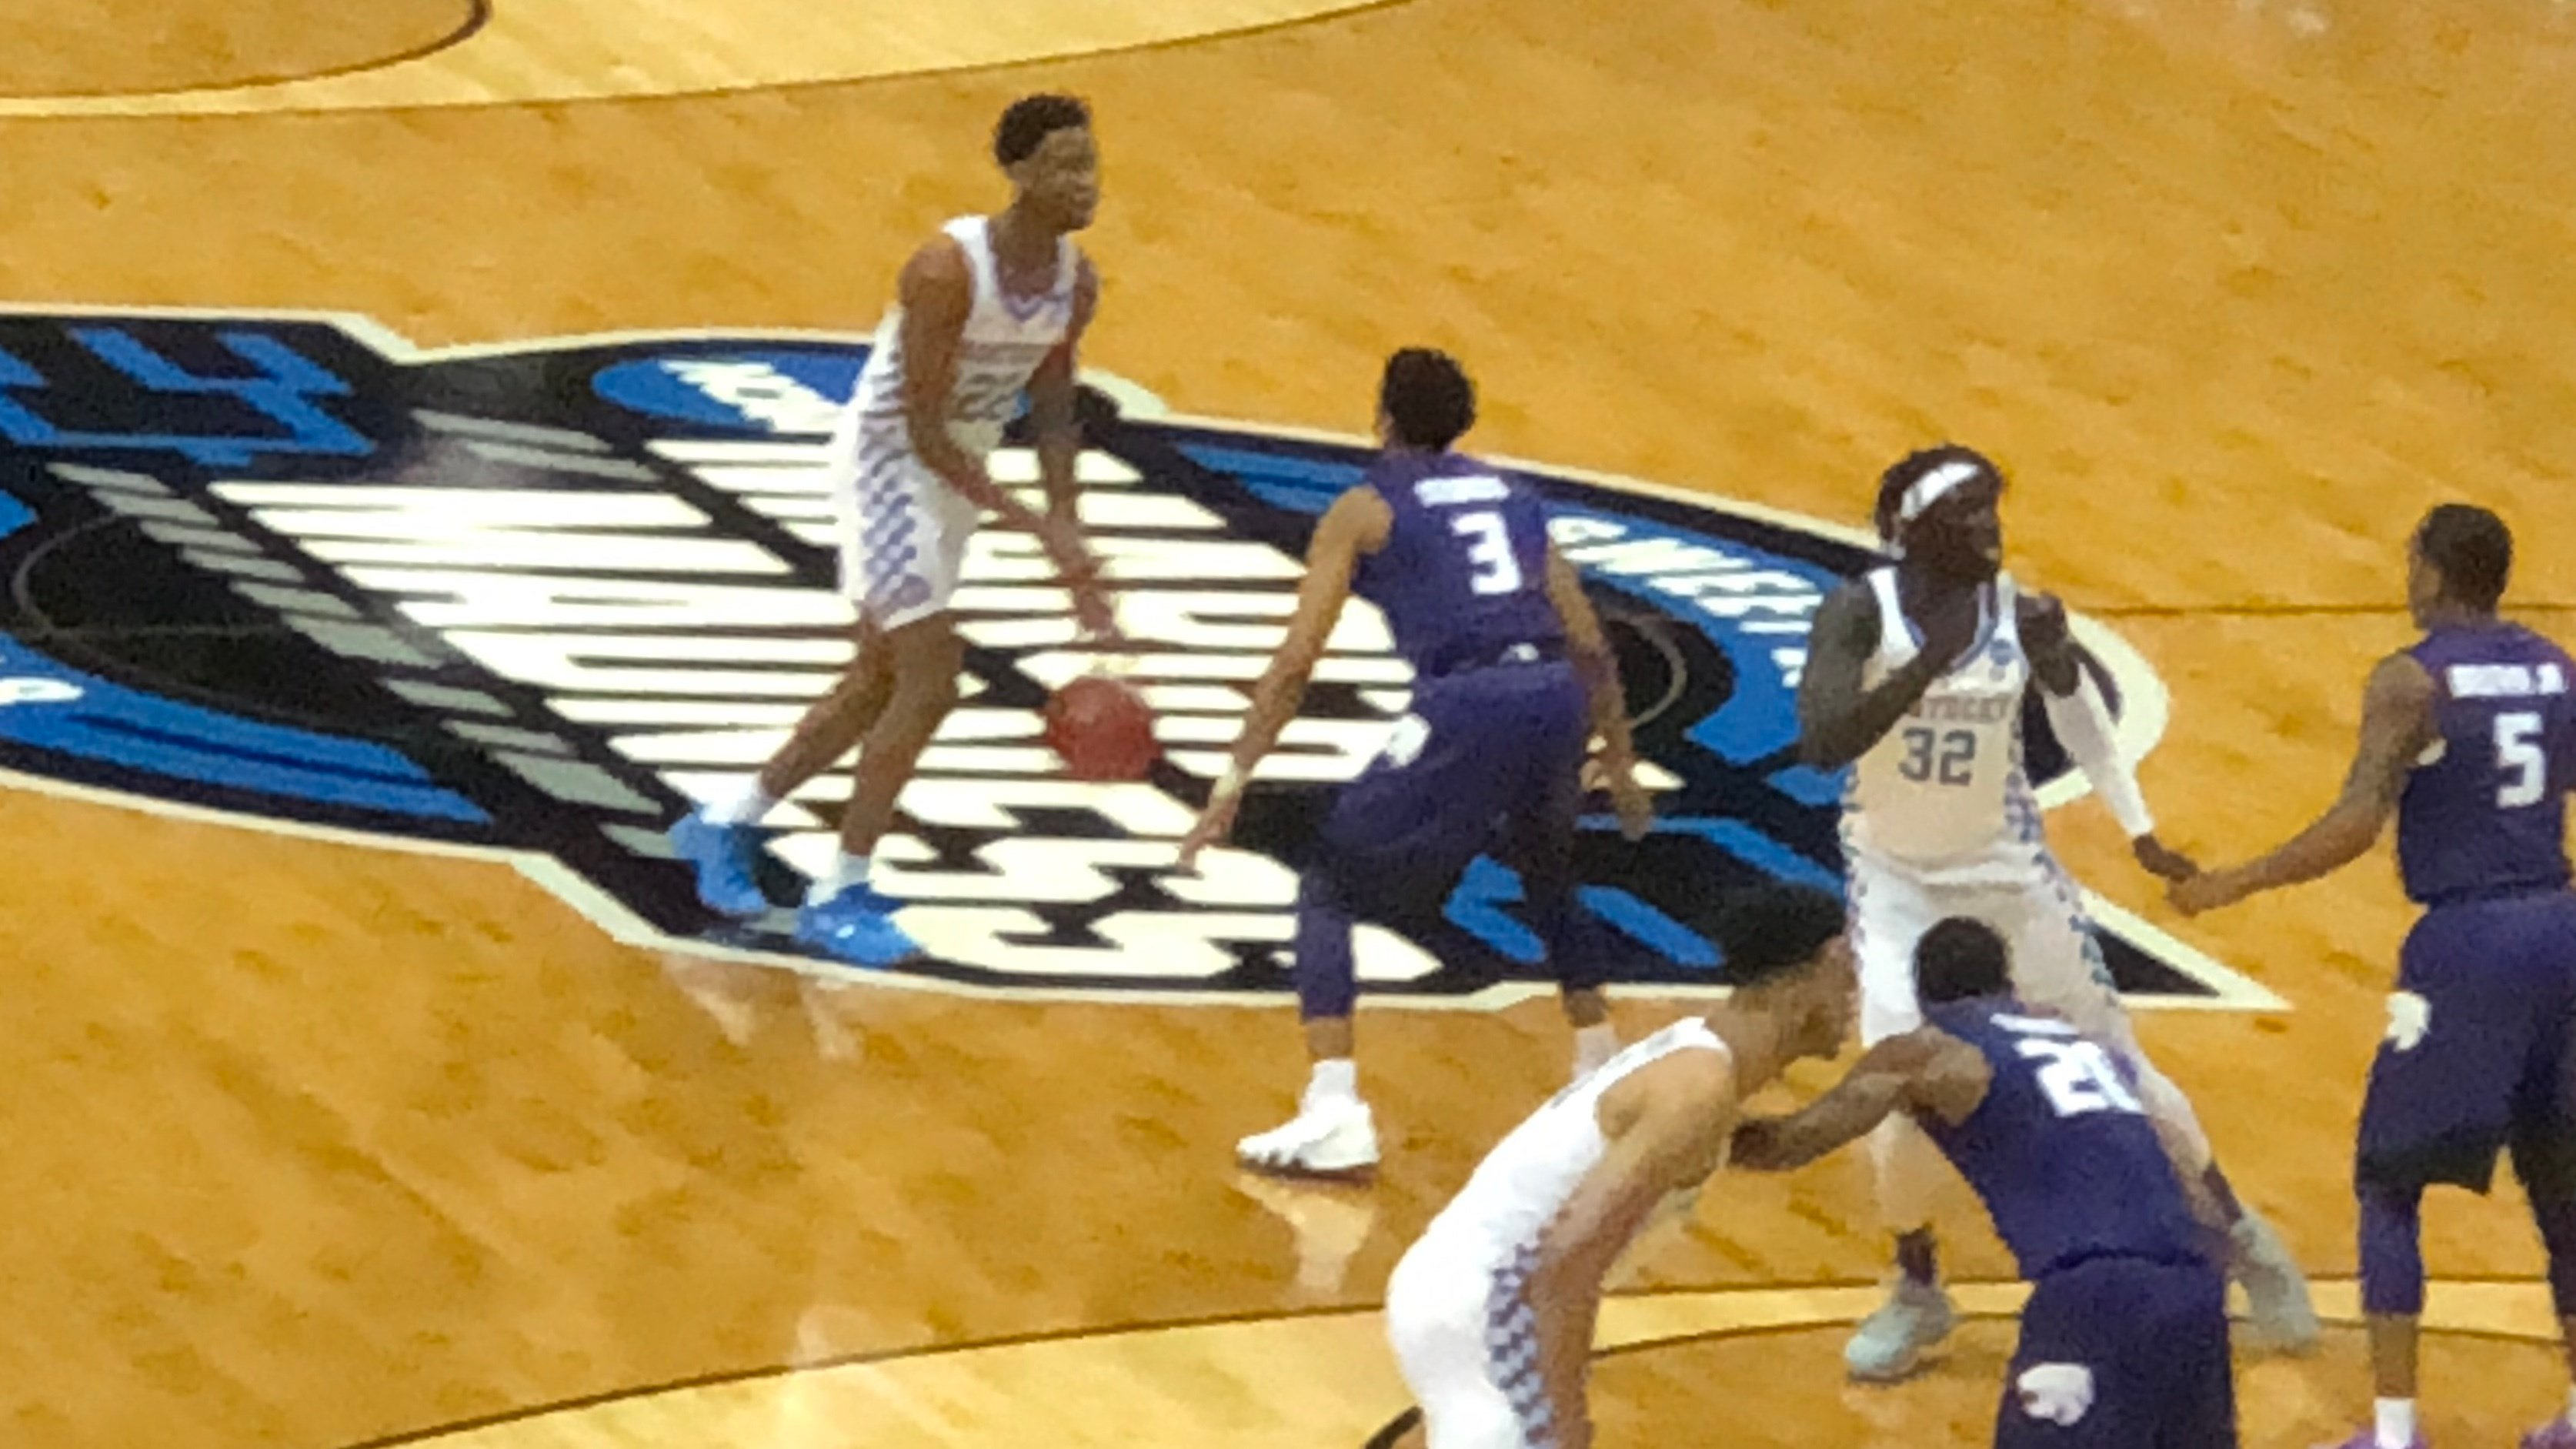 Kentucky moved within one game of a trip to the NCAA Final Four by defeating Kansas State Thursday night.